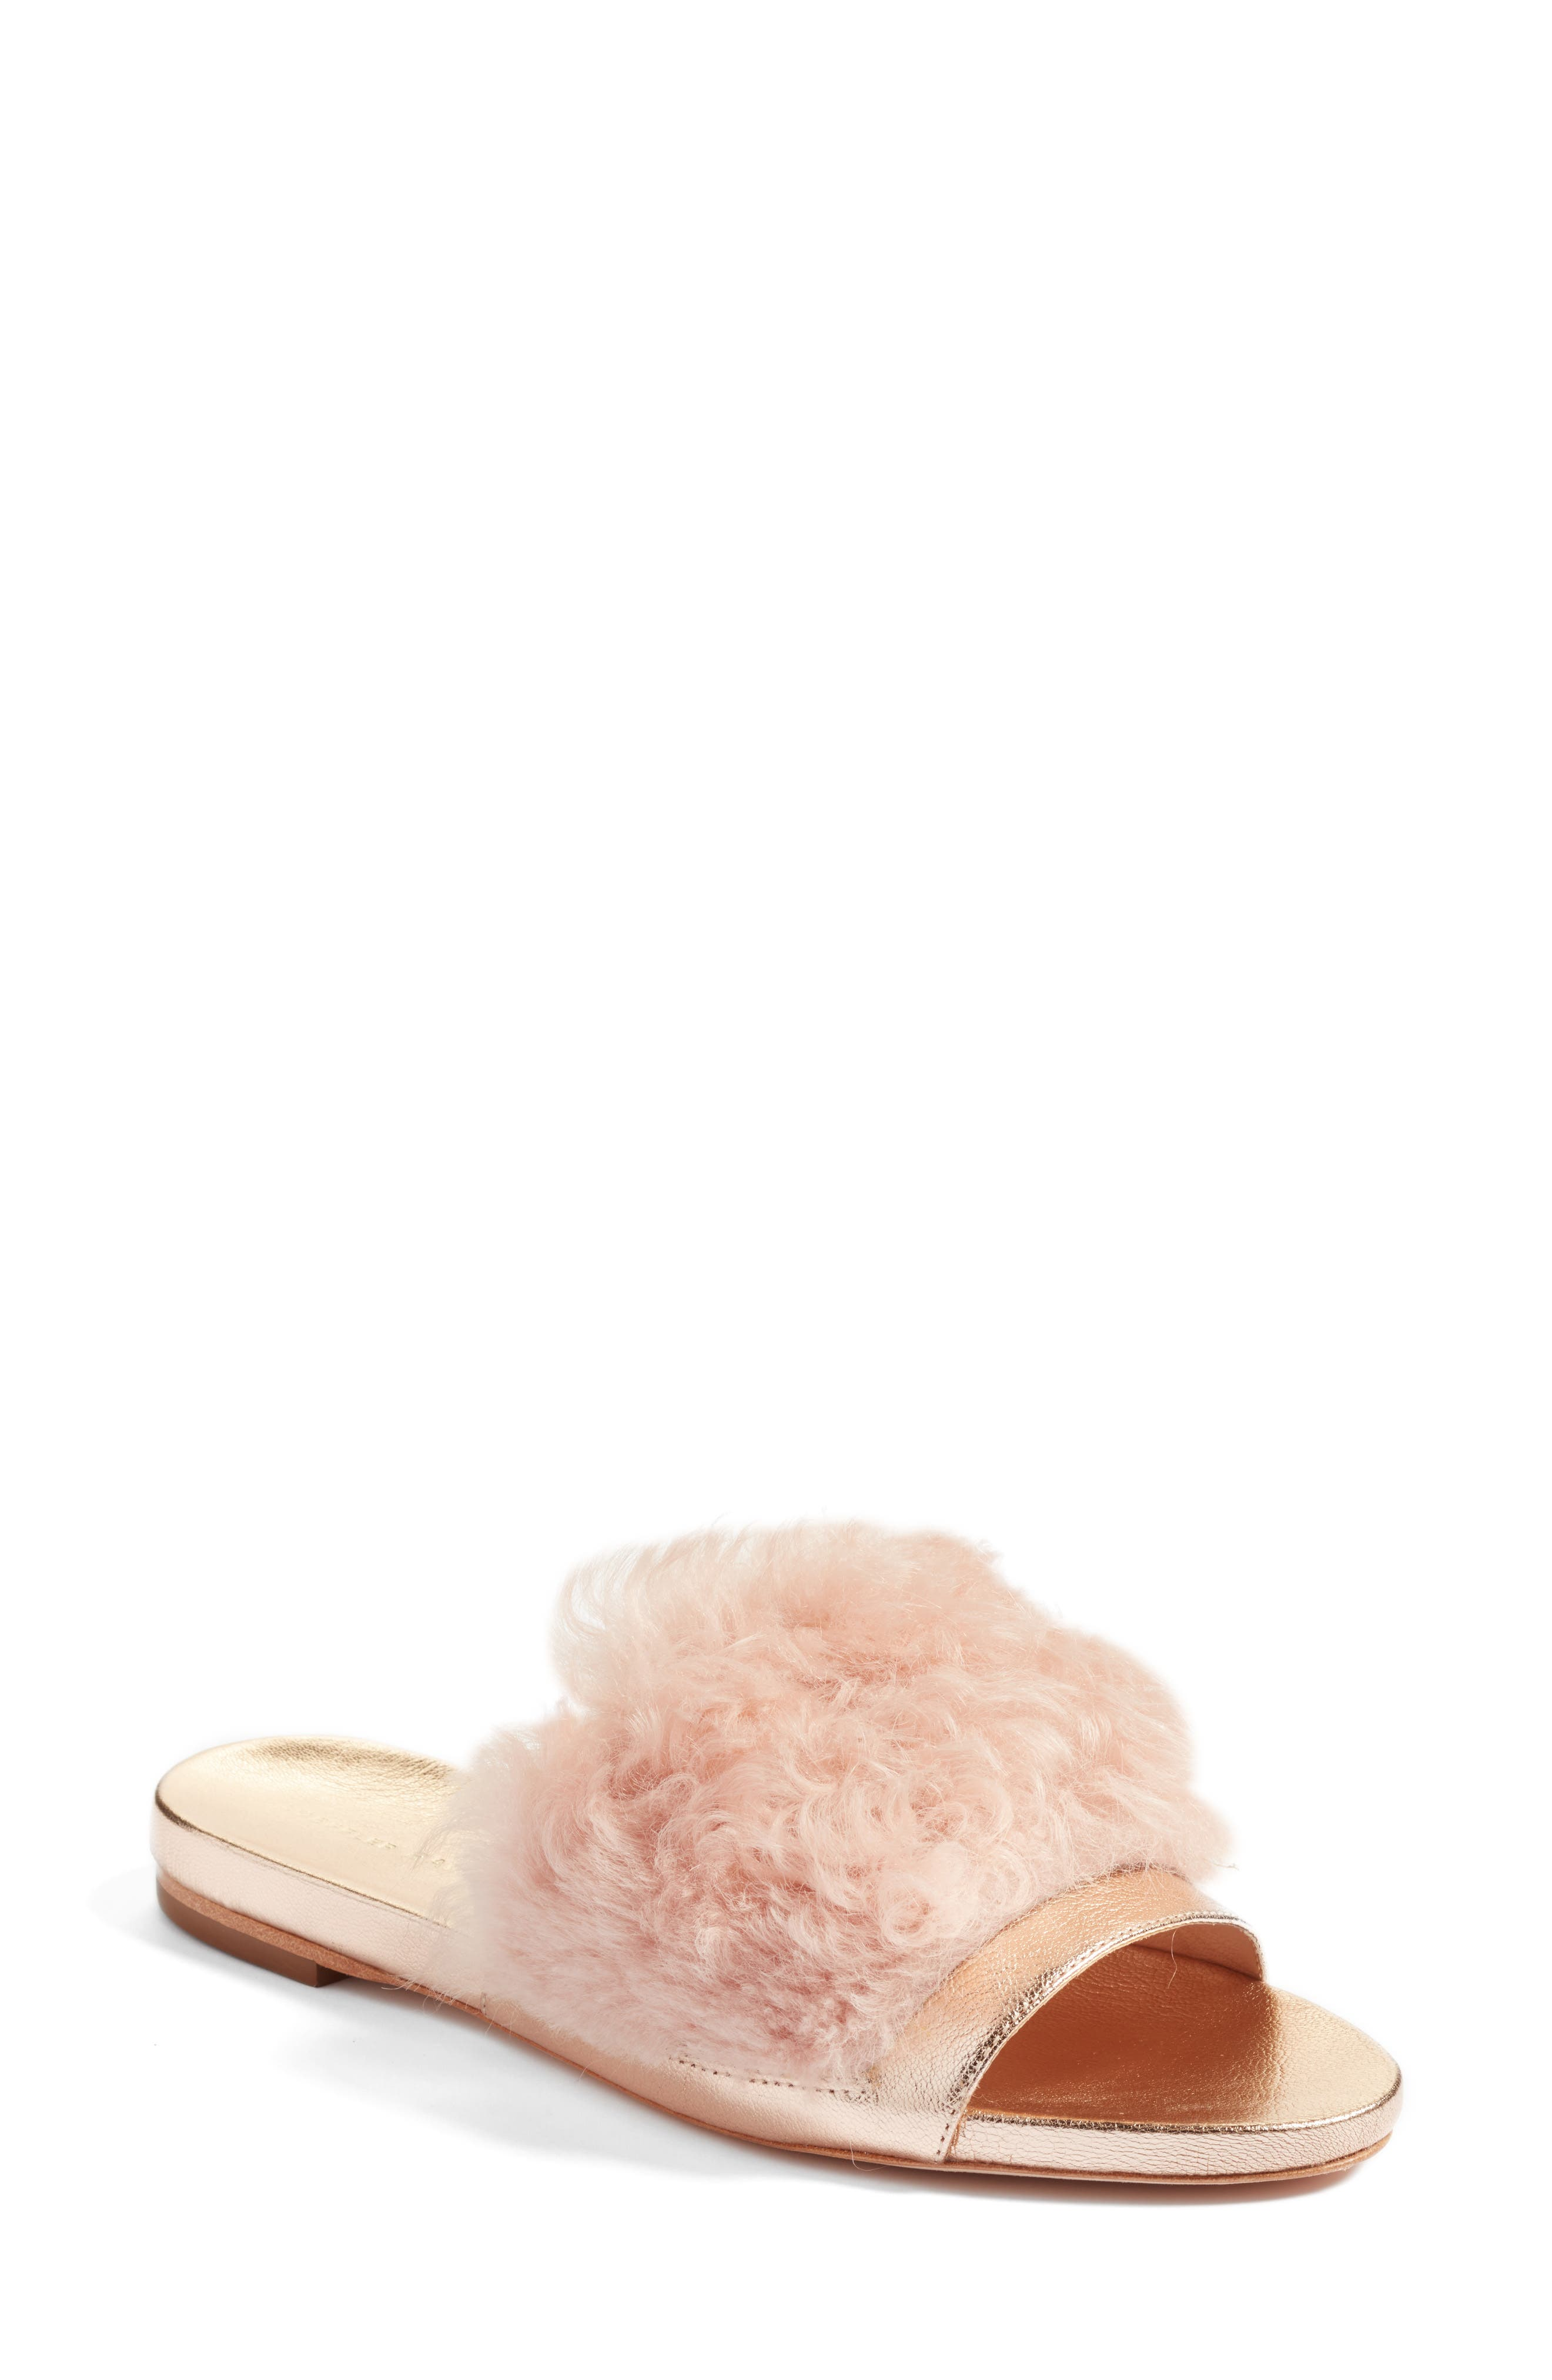 Loeffler Randall Domino Genuine Shearling Slide Sandal (Women)